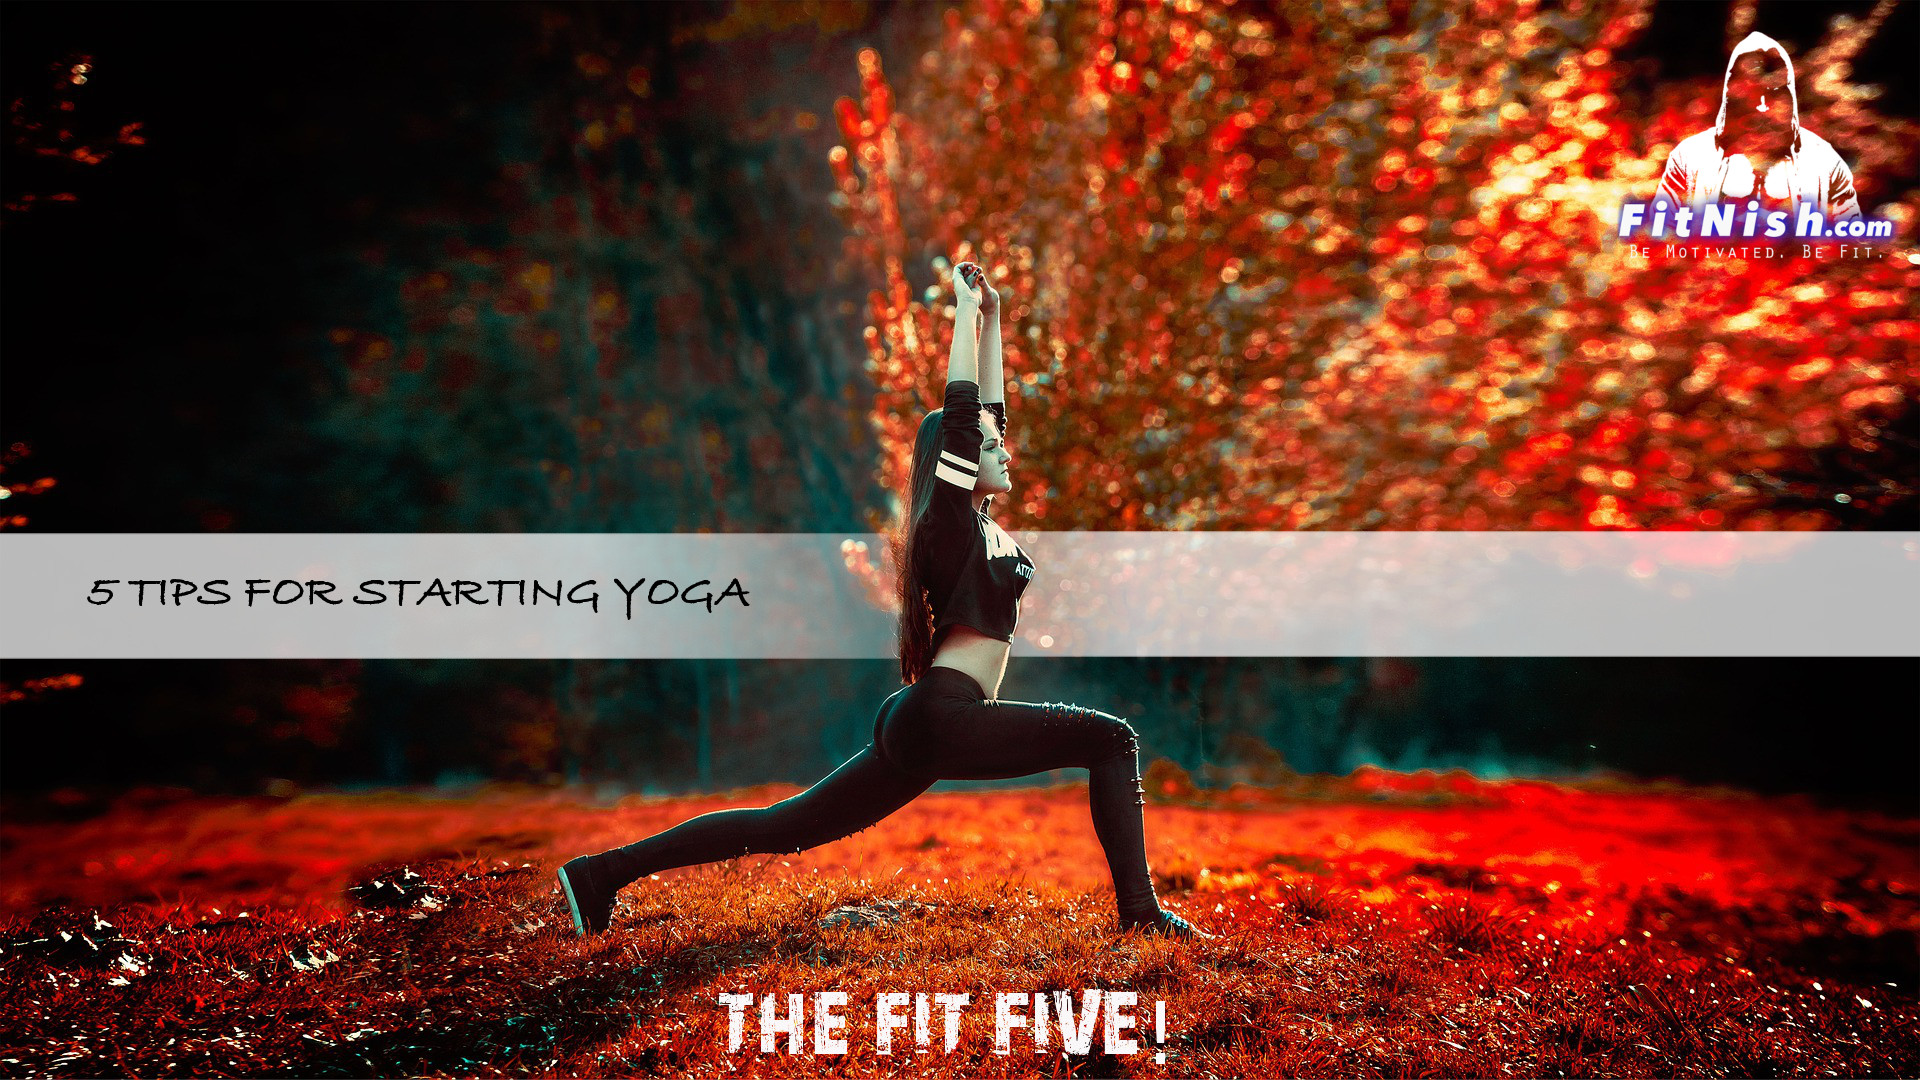 The Fit Five! 5 Tips For You, If You Are Deciding To Give Yoga A Try